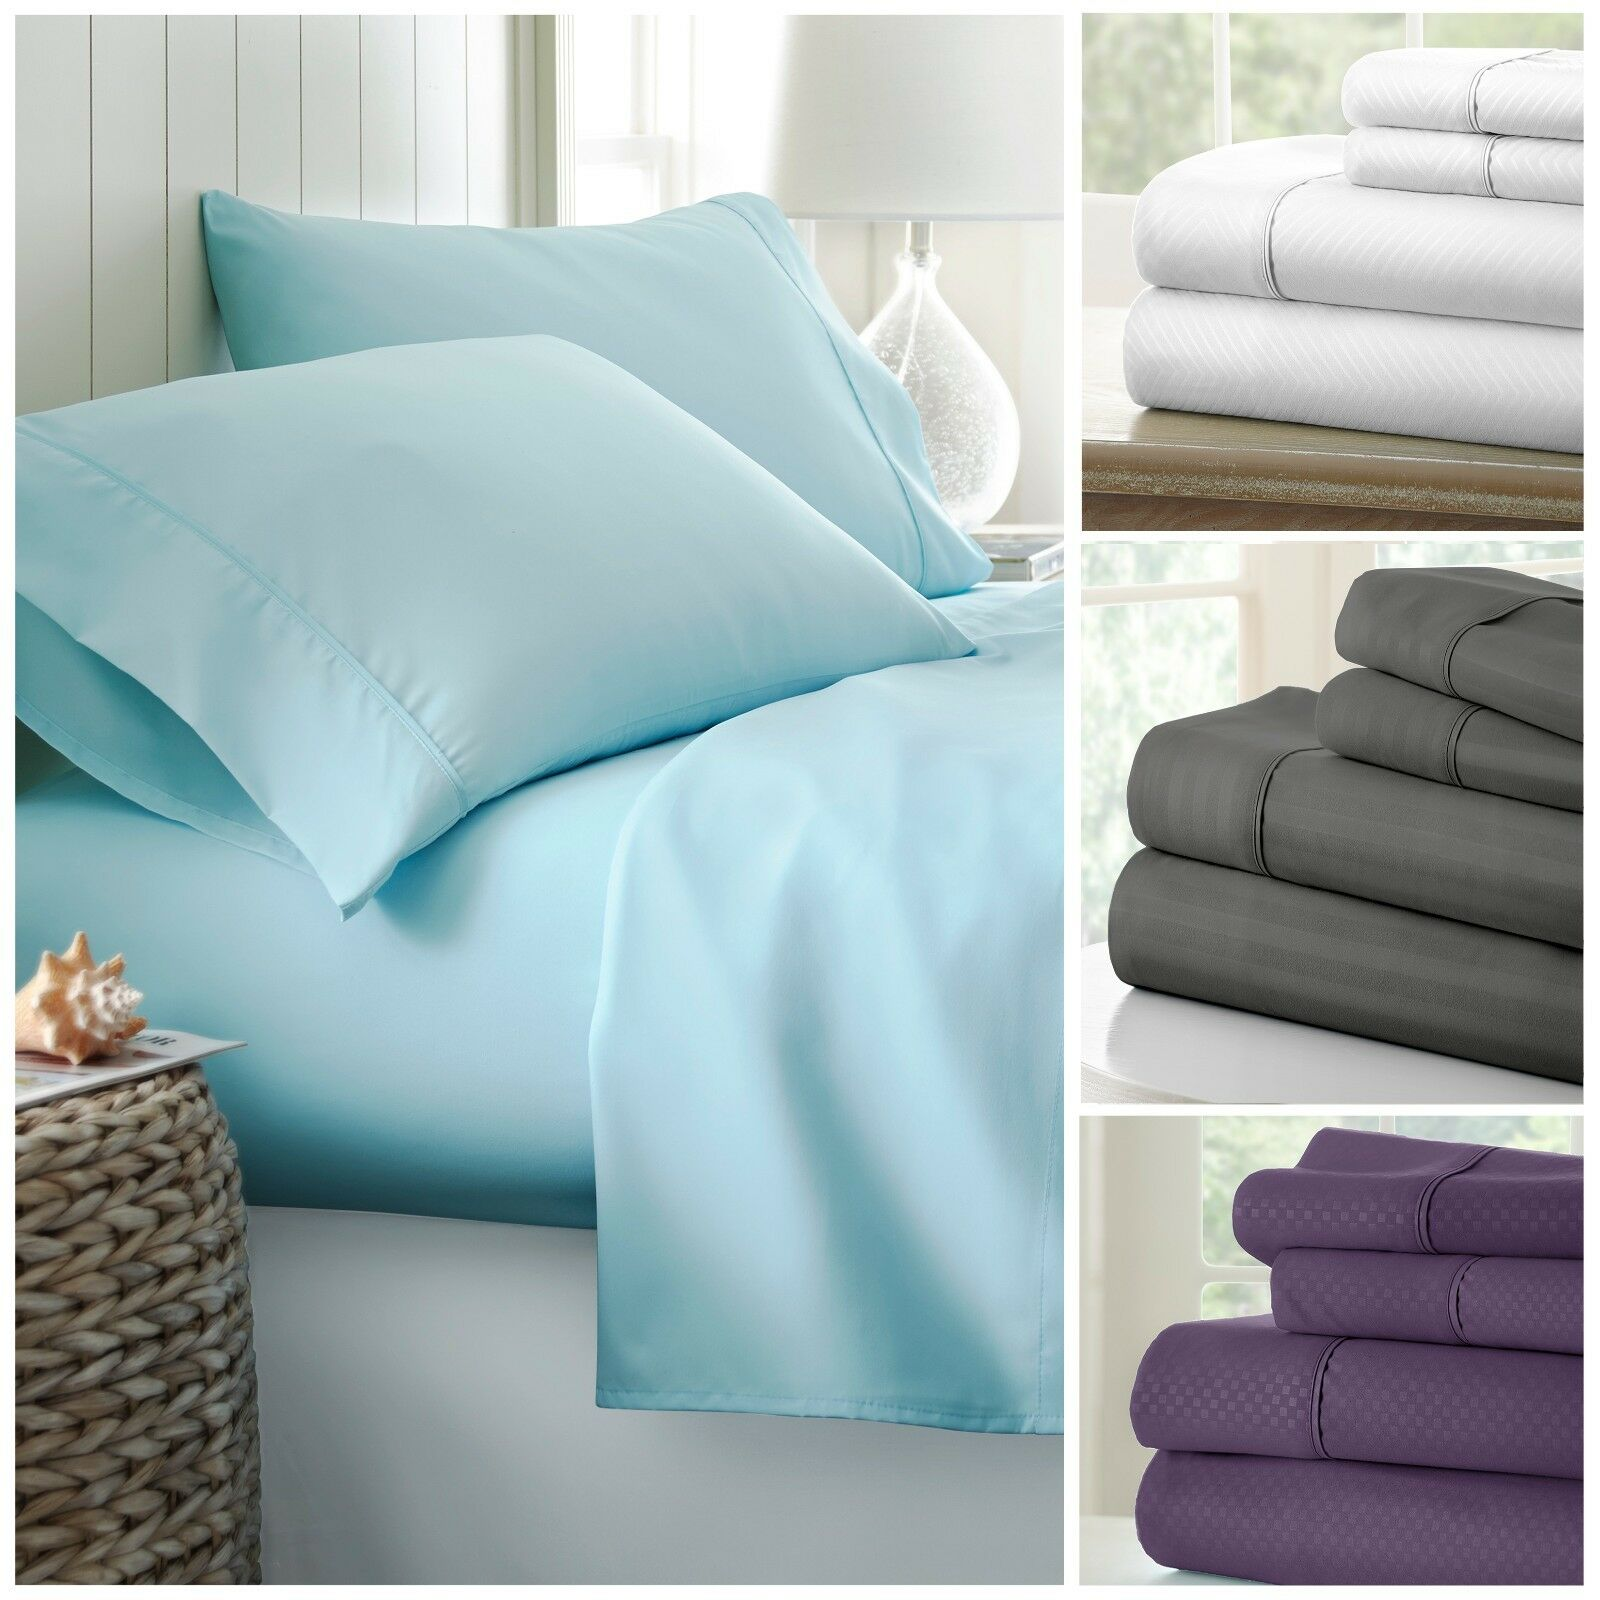 Hotel Quality Ultra Soft 4 Piece Bed Sheet Set - 4 Luxury Patterns Was: $79.99 Now: $17.99 and Free Shipping.